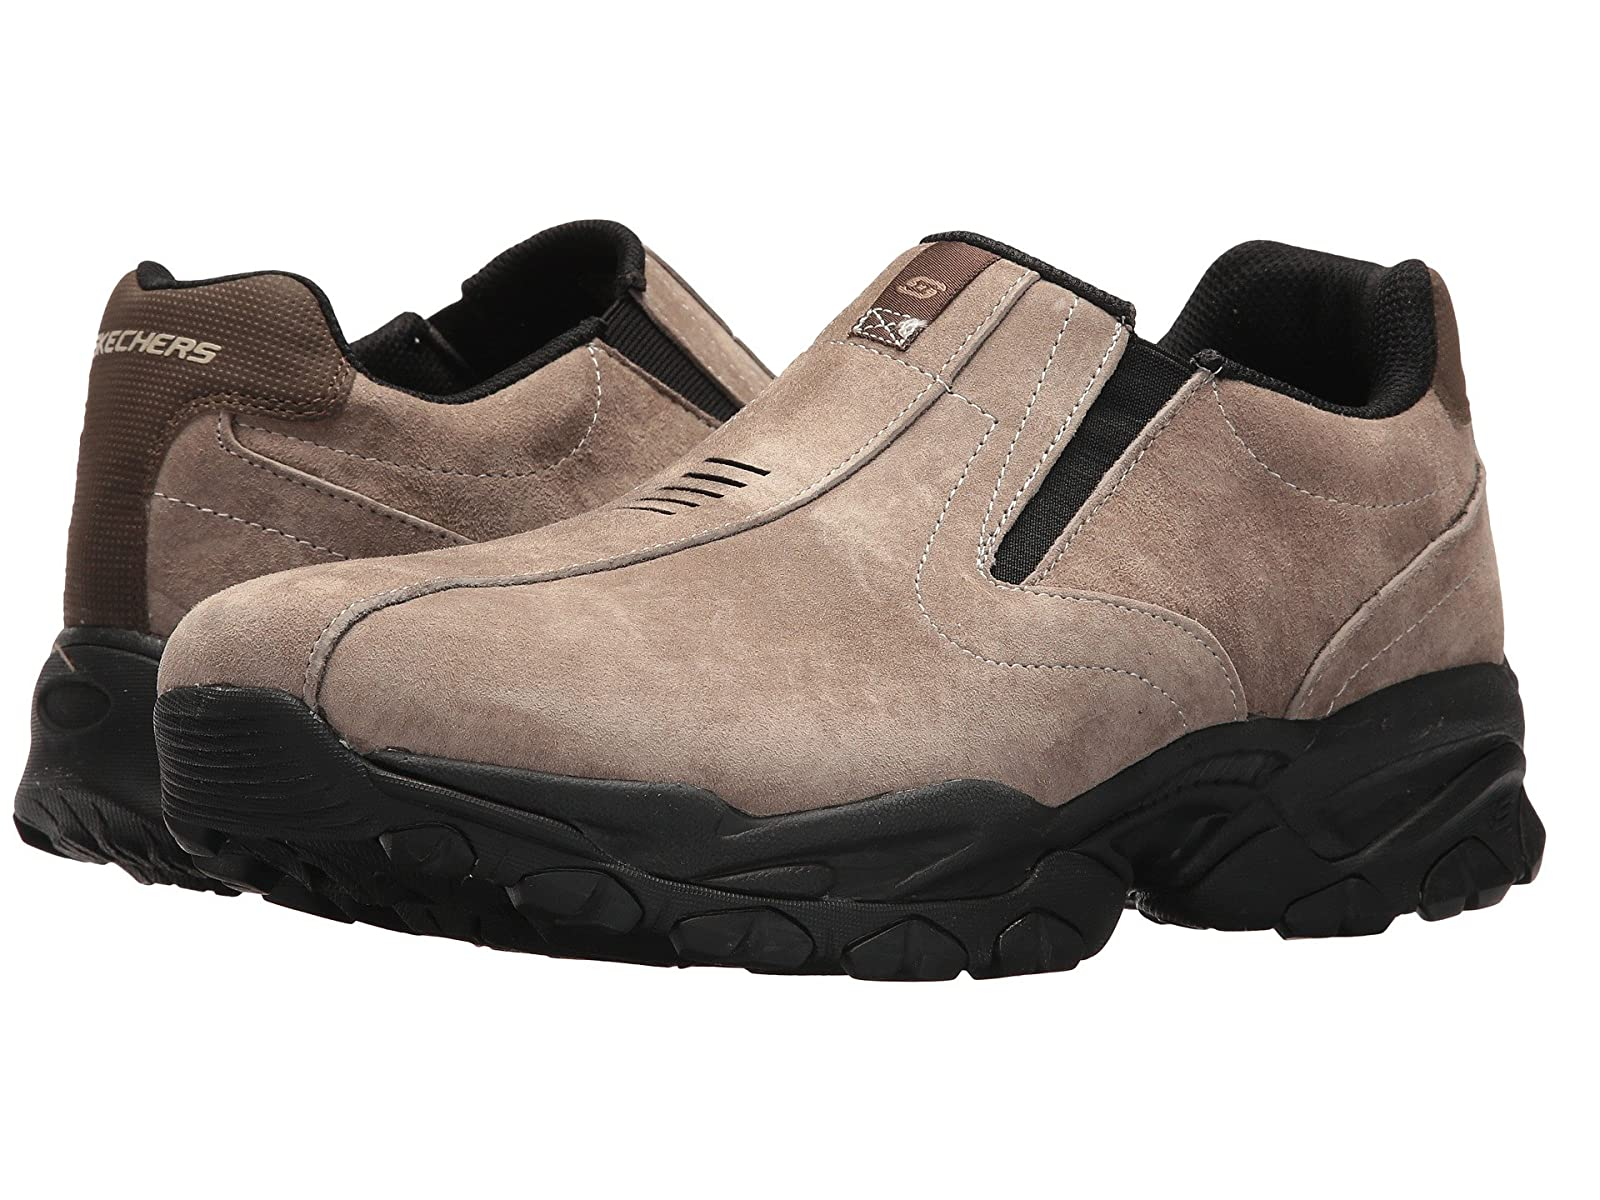 SKECHERS Sparta 2.0 - CorbinoAtmospheric grades have affordable shoes